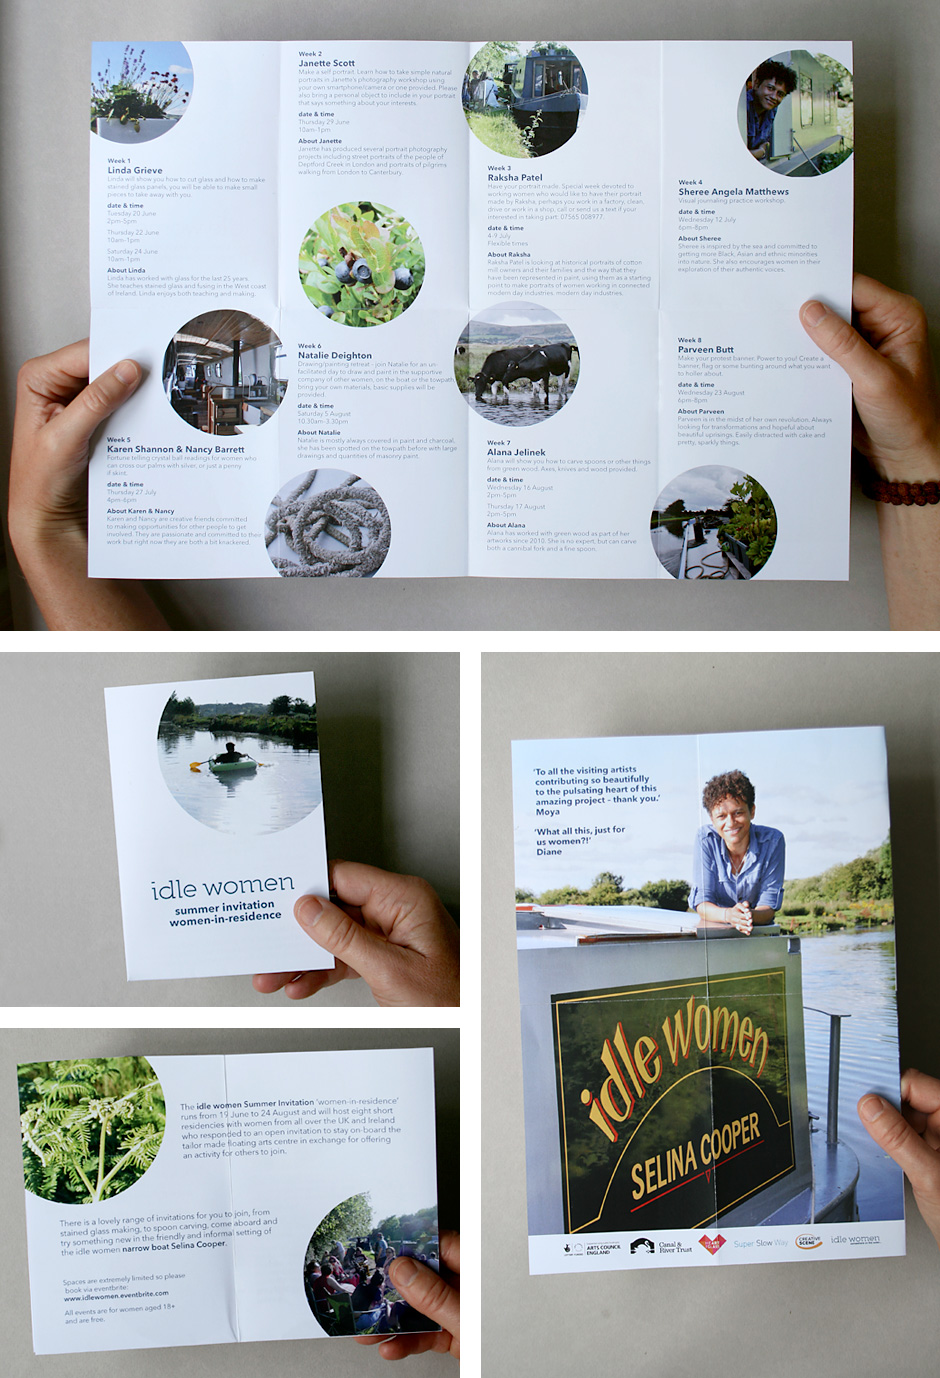 Image showing four configurations of the folded A3 summer programme leaflet for idle women